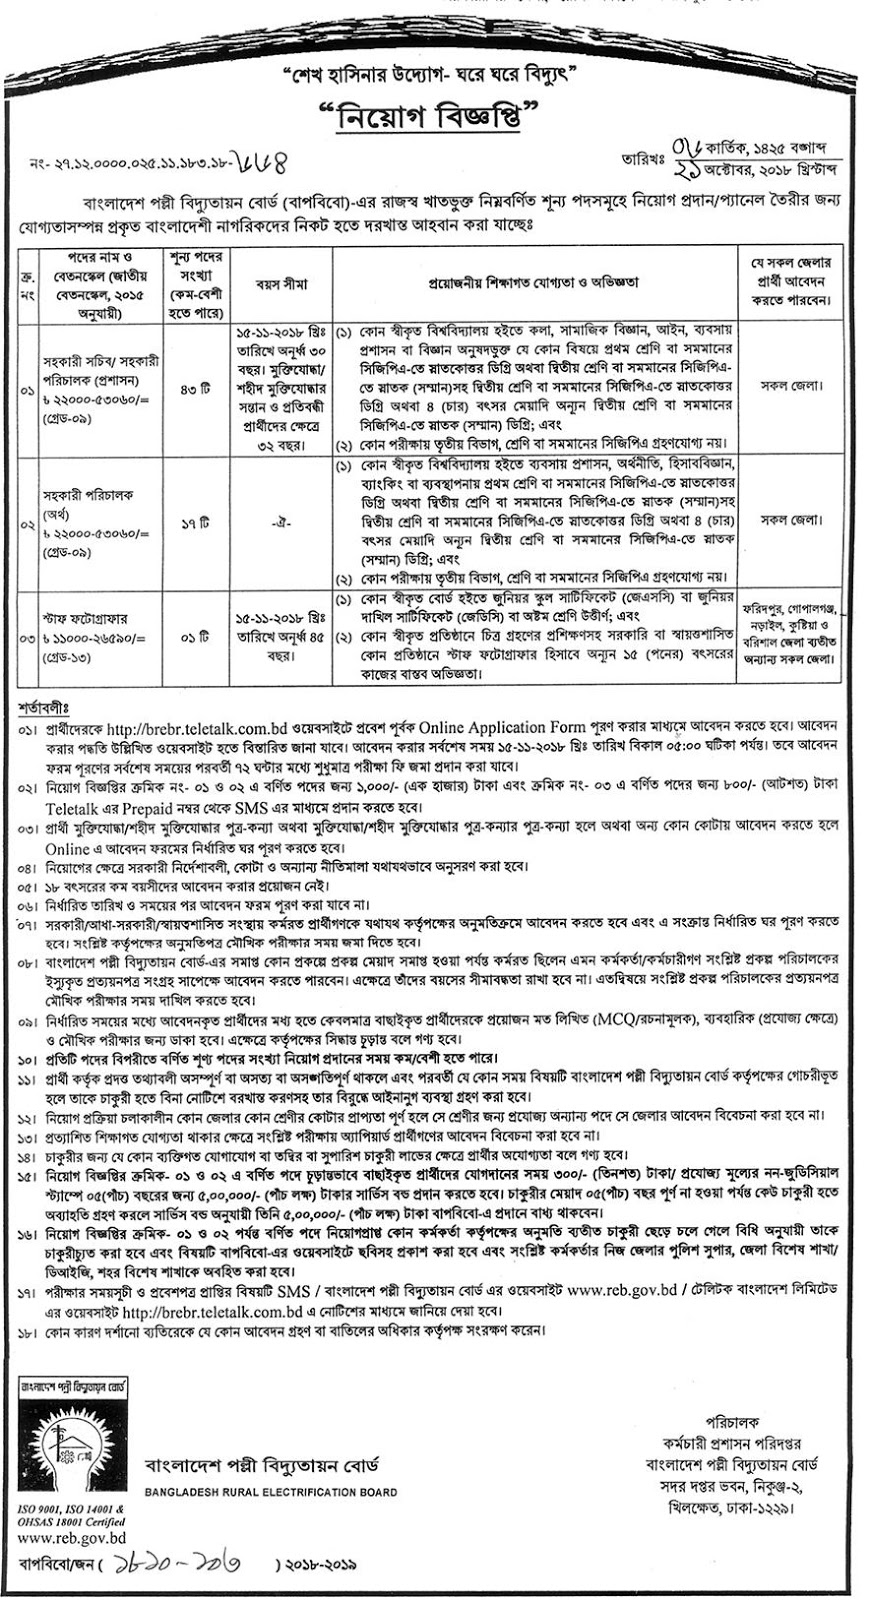 Bangladesh Rural Electrification Board (BREB)Job Circular 2018